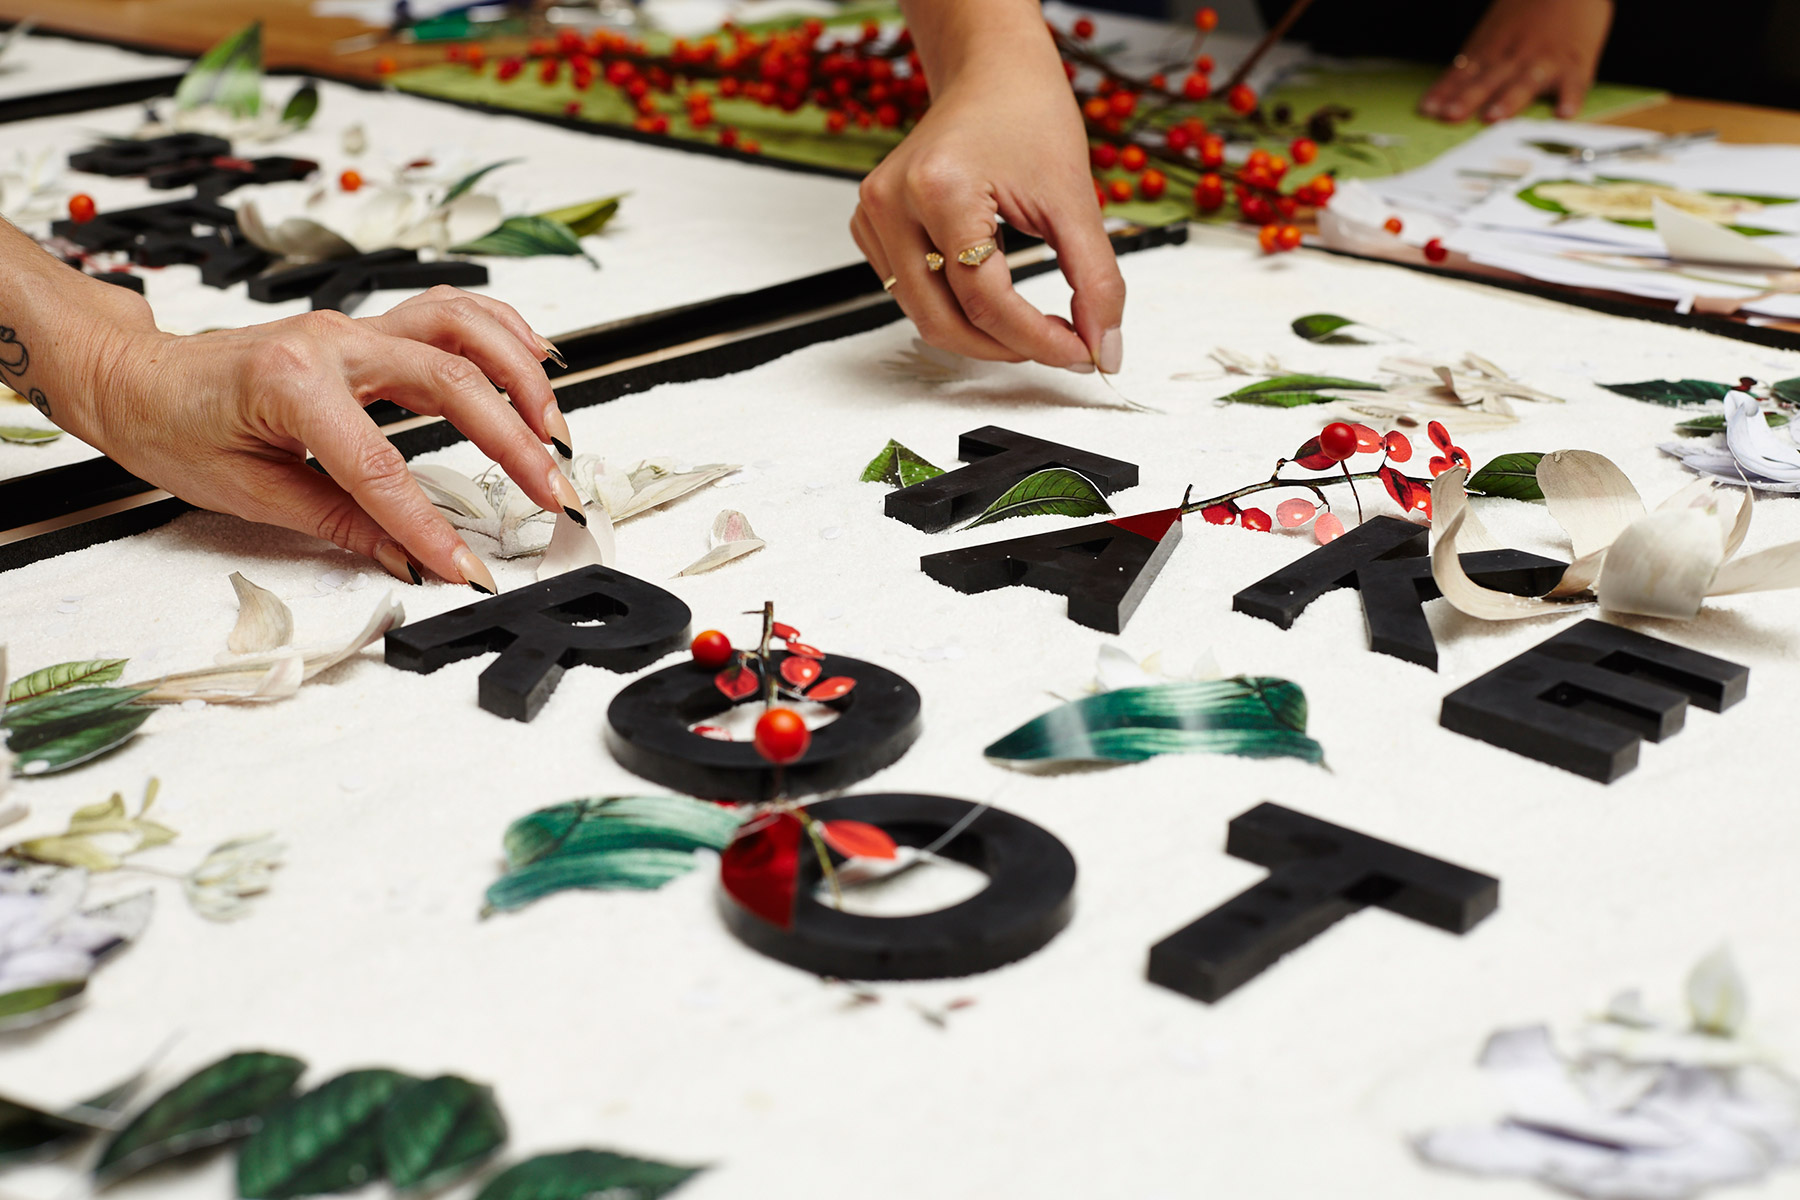 A photo of peoples' hands composing florally-decorated type